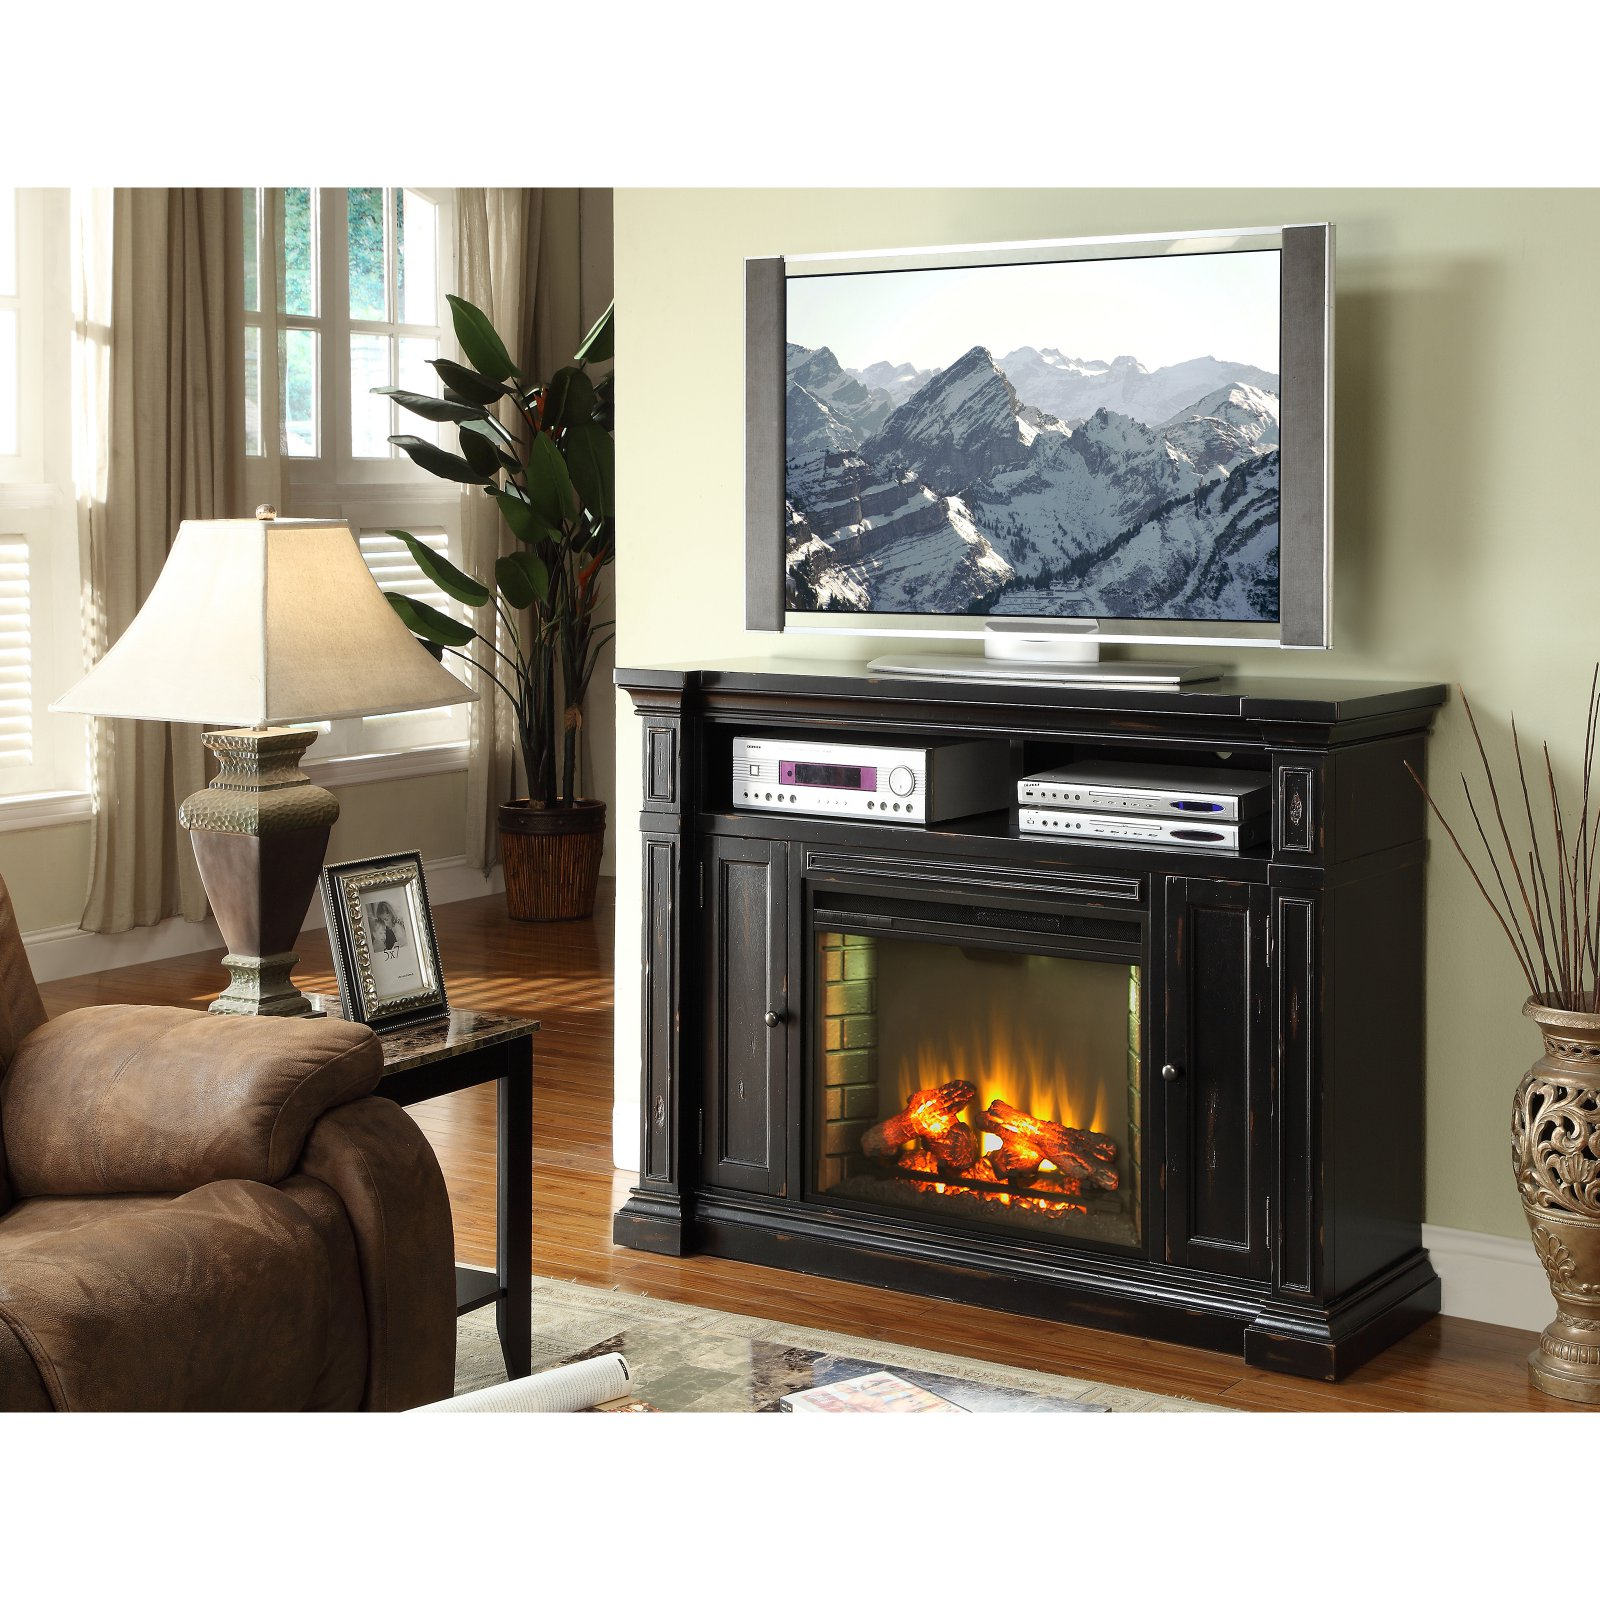 Legends Furniture Manchester 58 in. Electric Media Fireplace